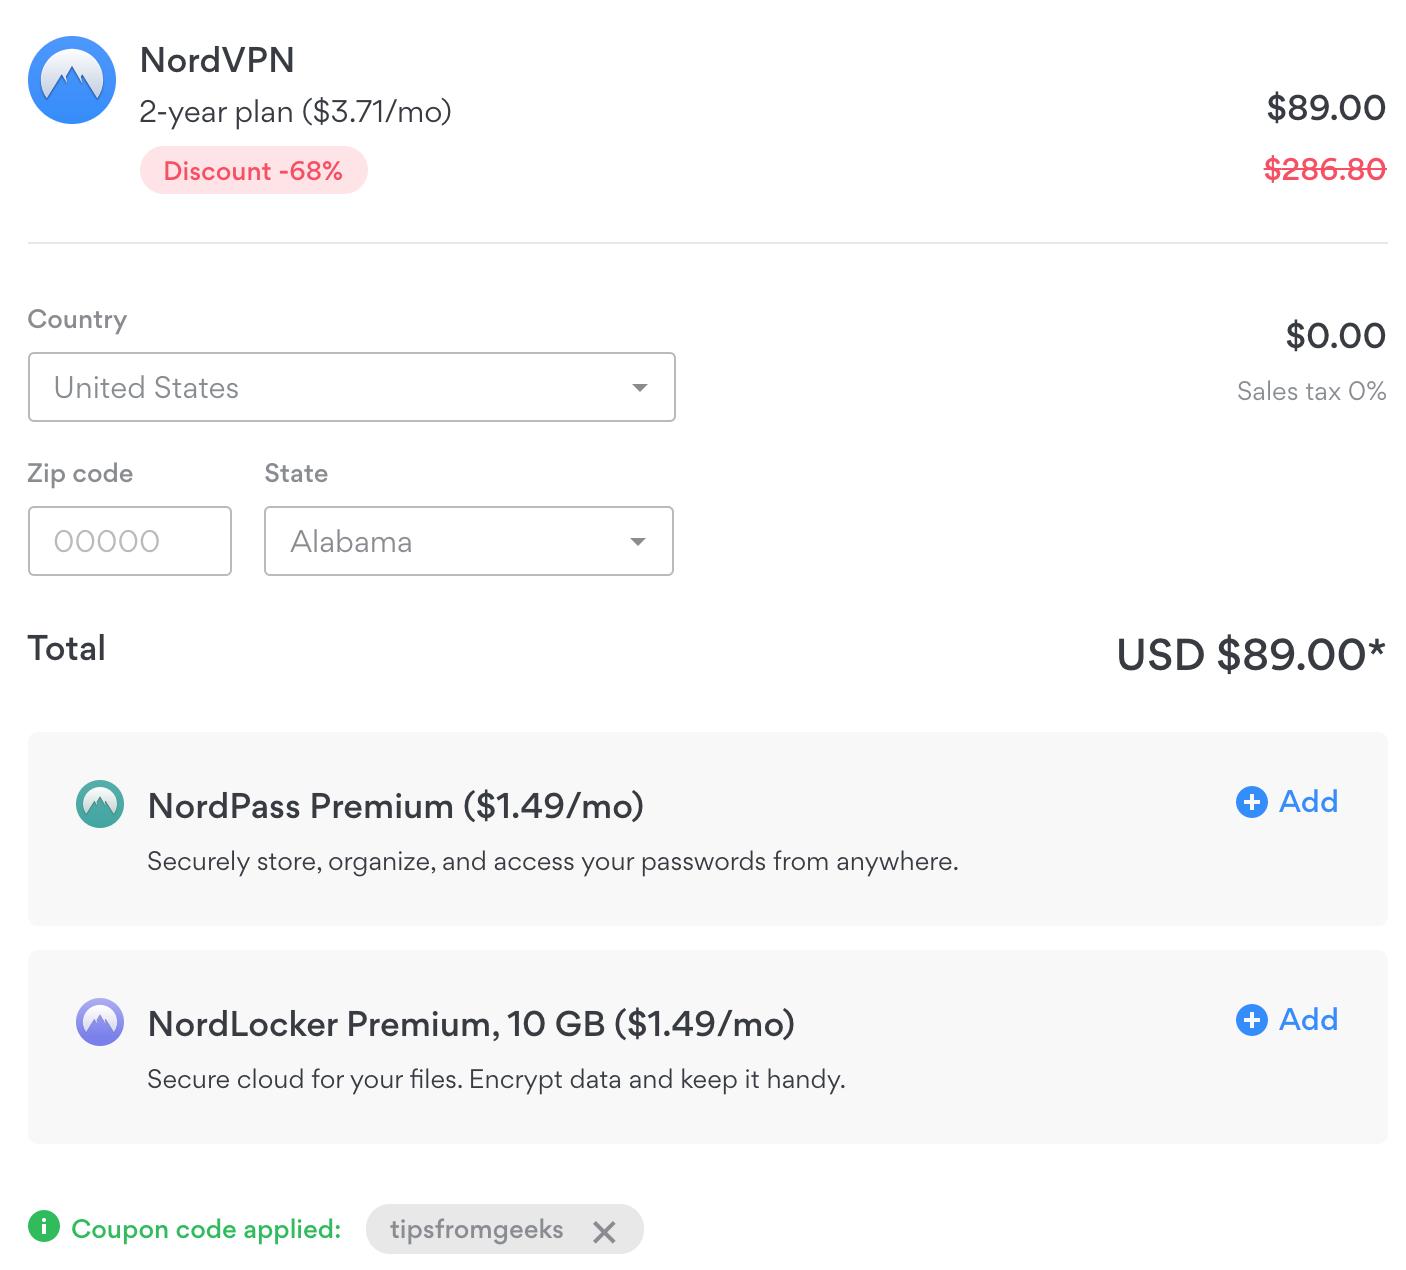 Get NordVPN coupon code with AlternateHistoryHub and Tipsfromgeeks